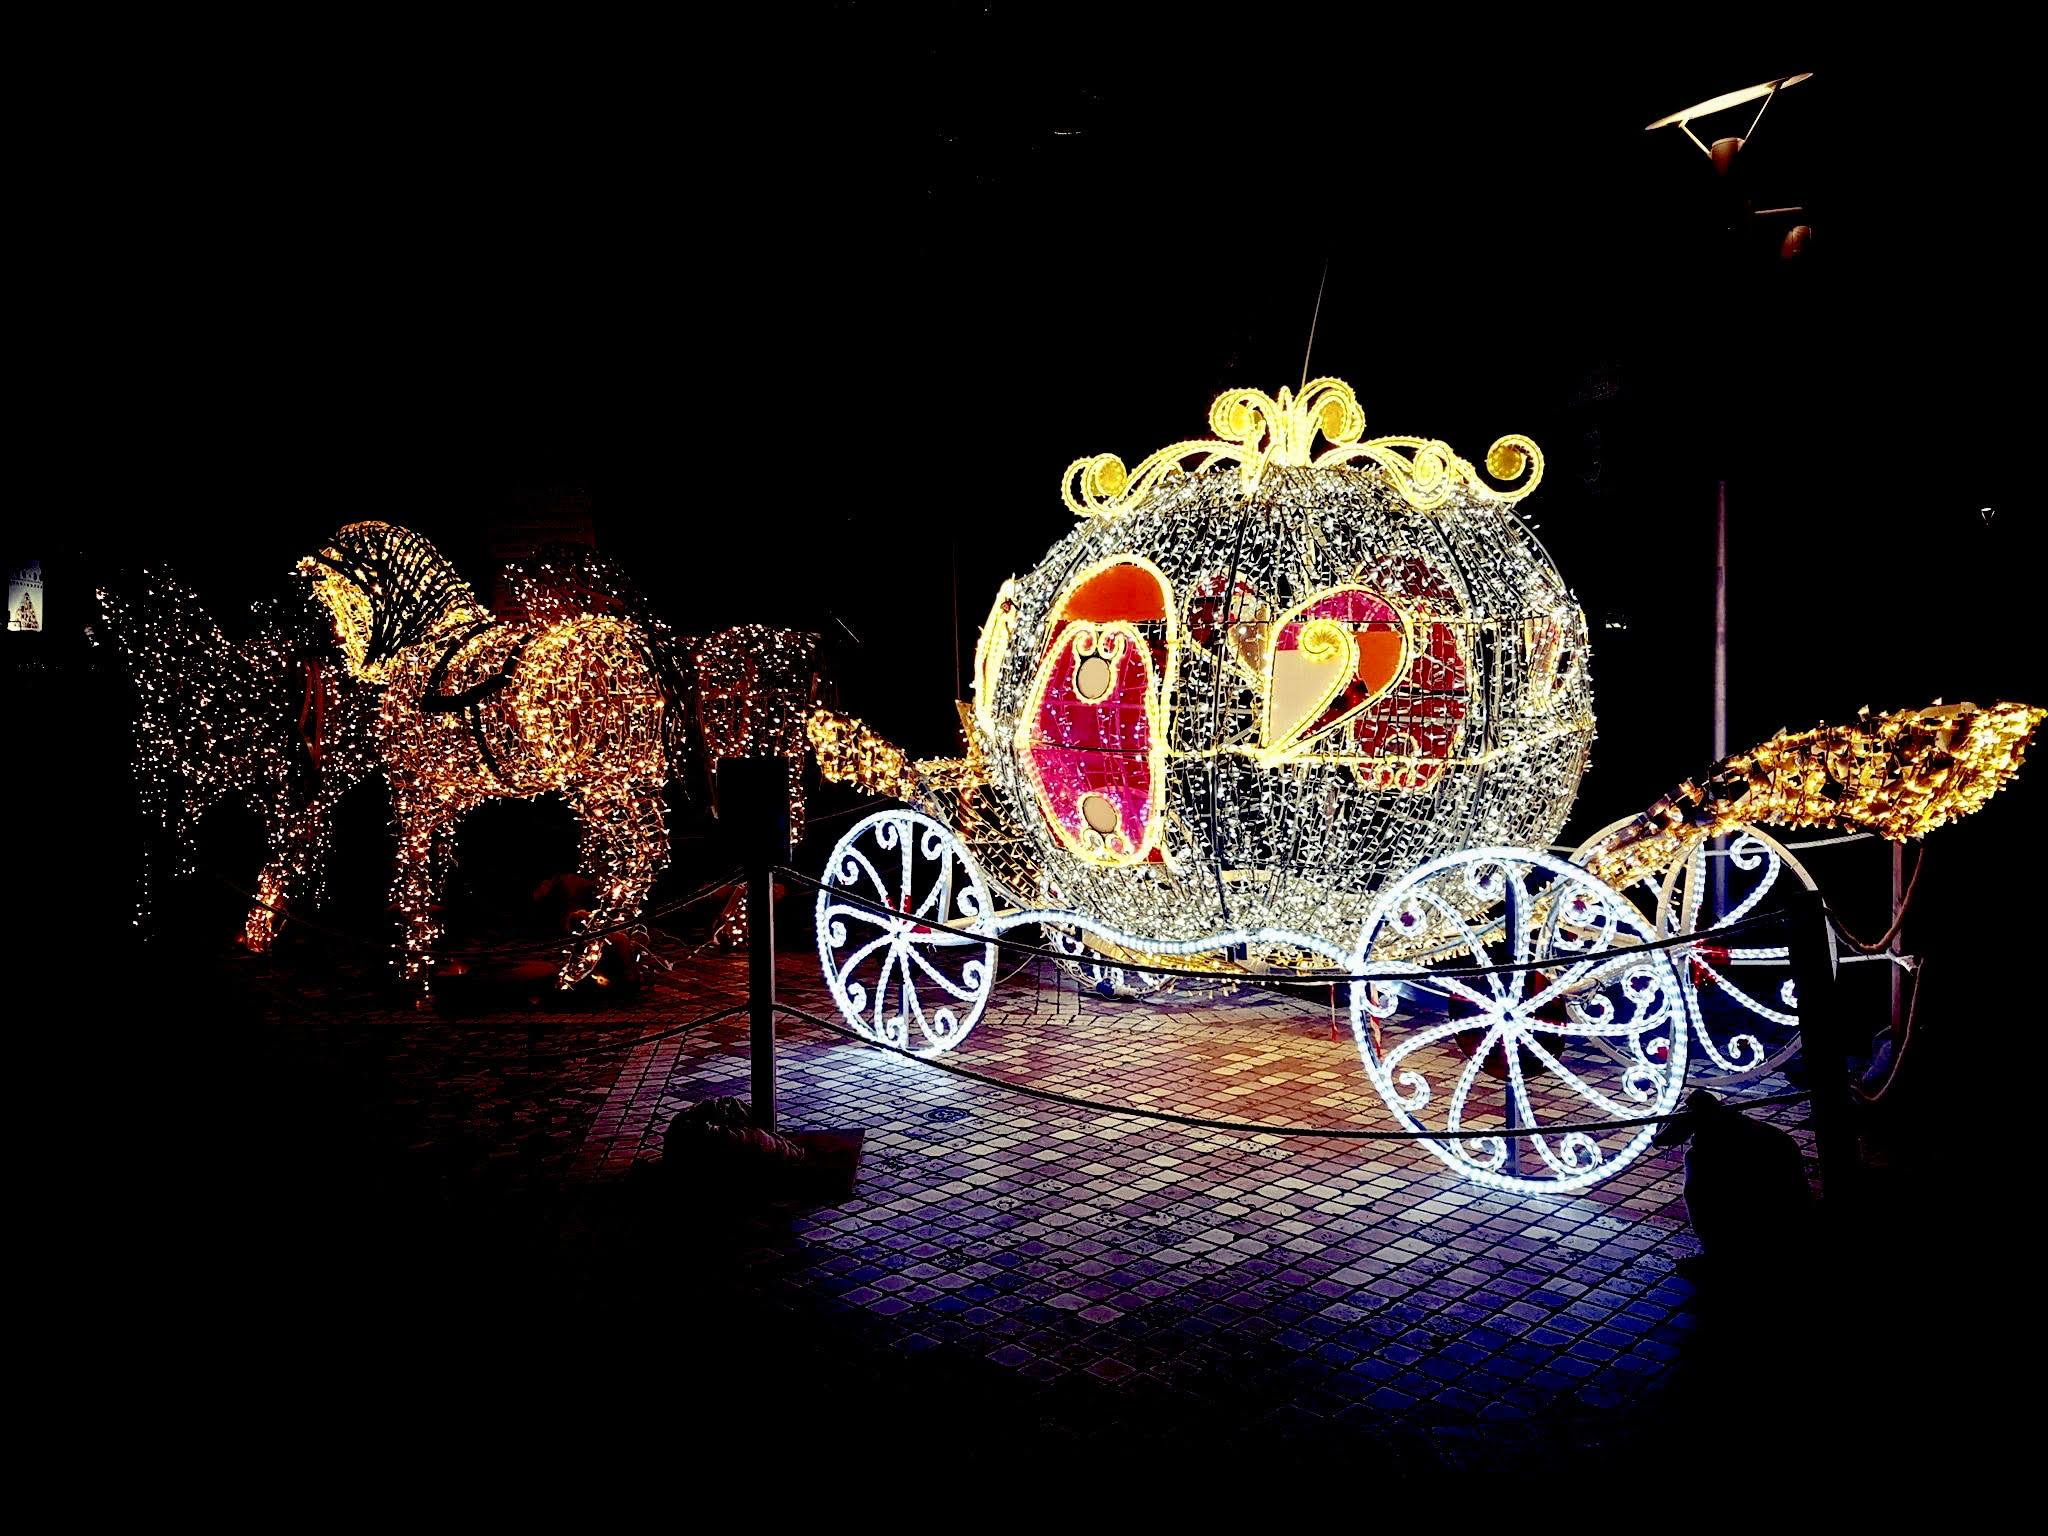 Cinderella's carriage